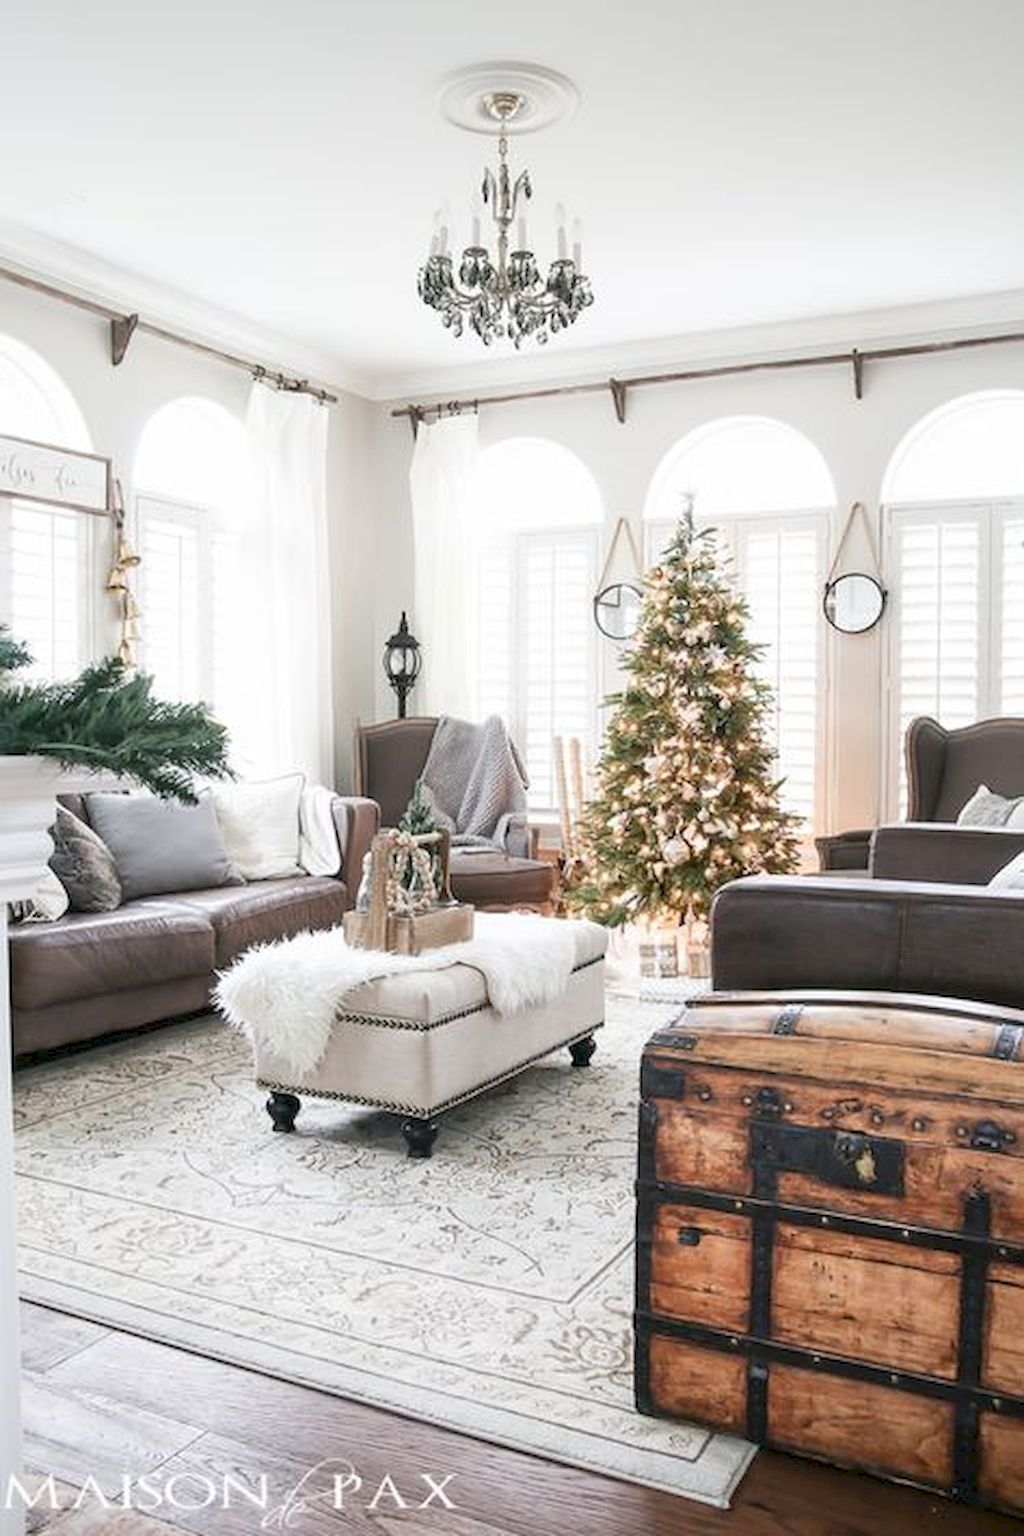 Decorate Living Room For Christmas Party | www.elderbranch.com